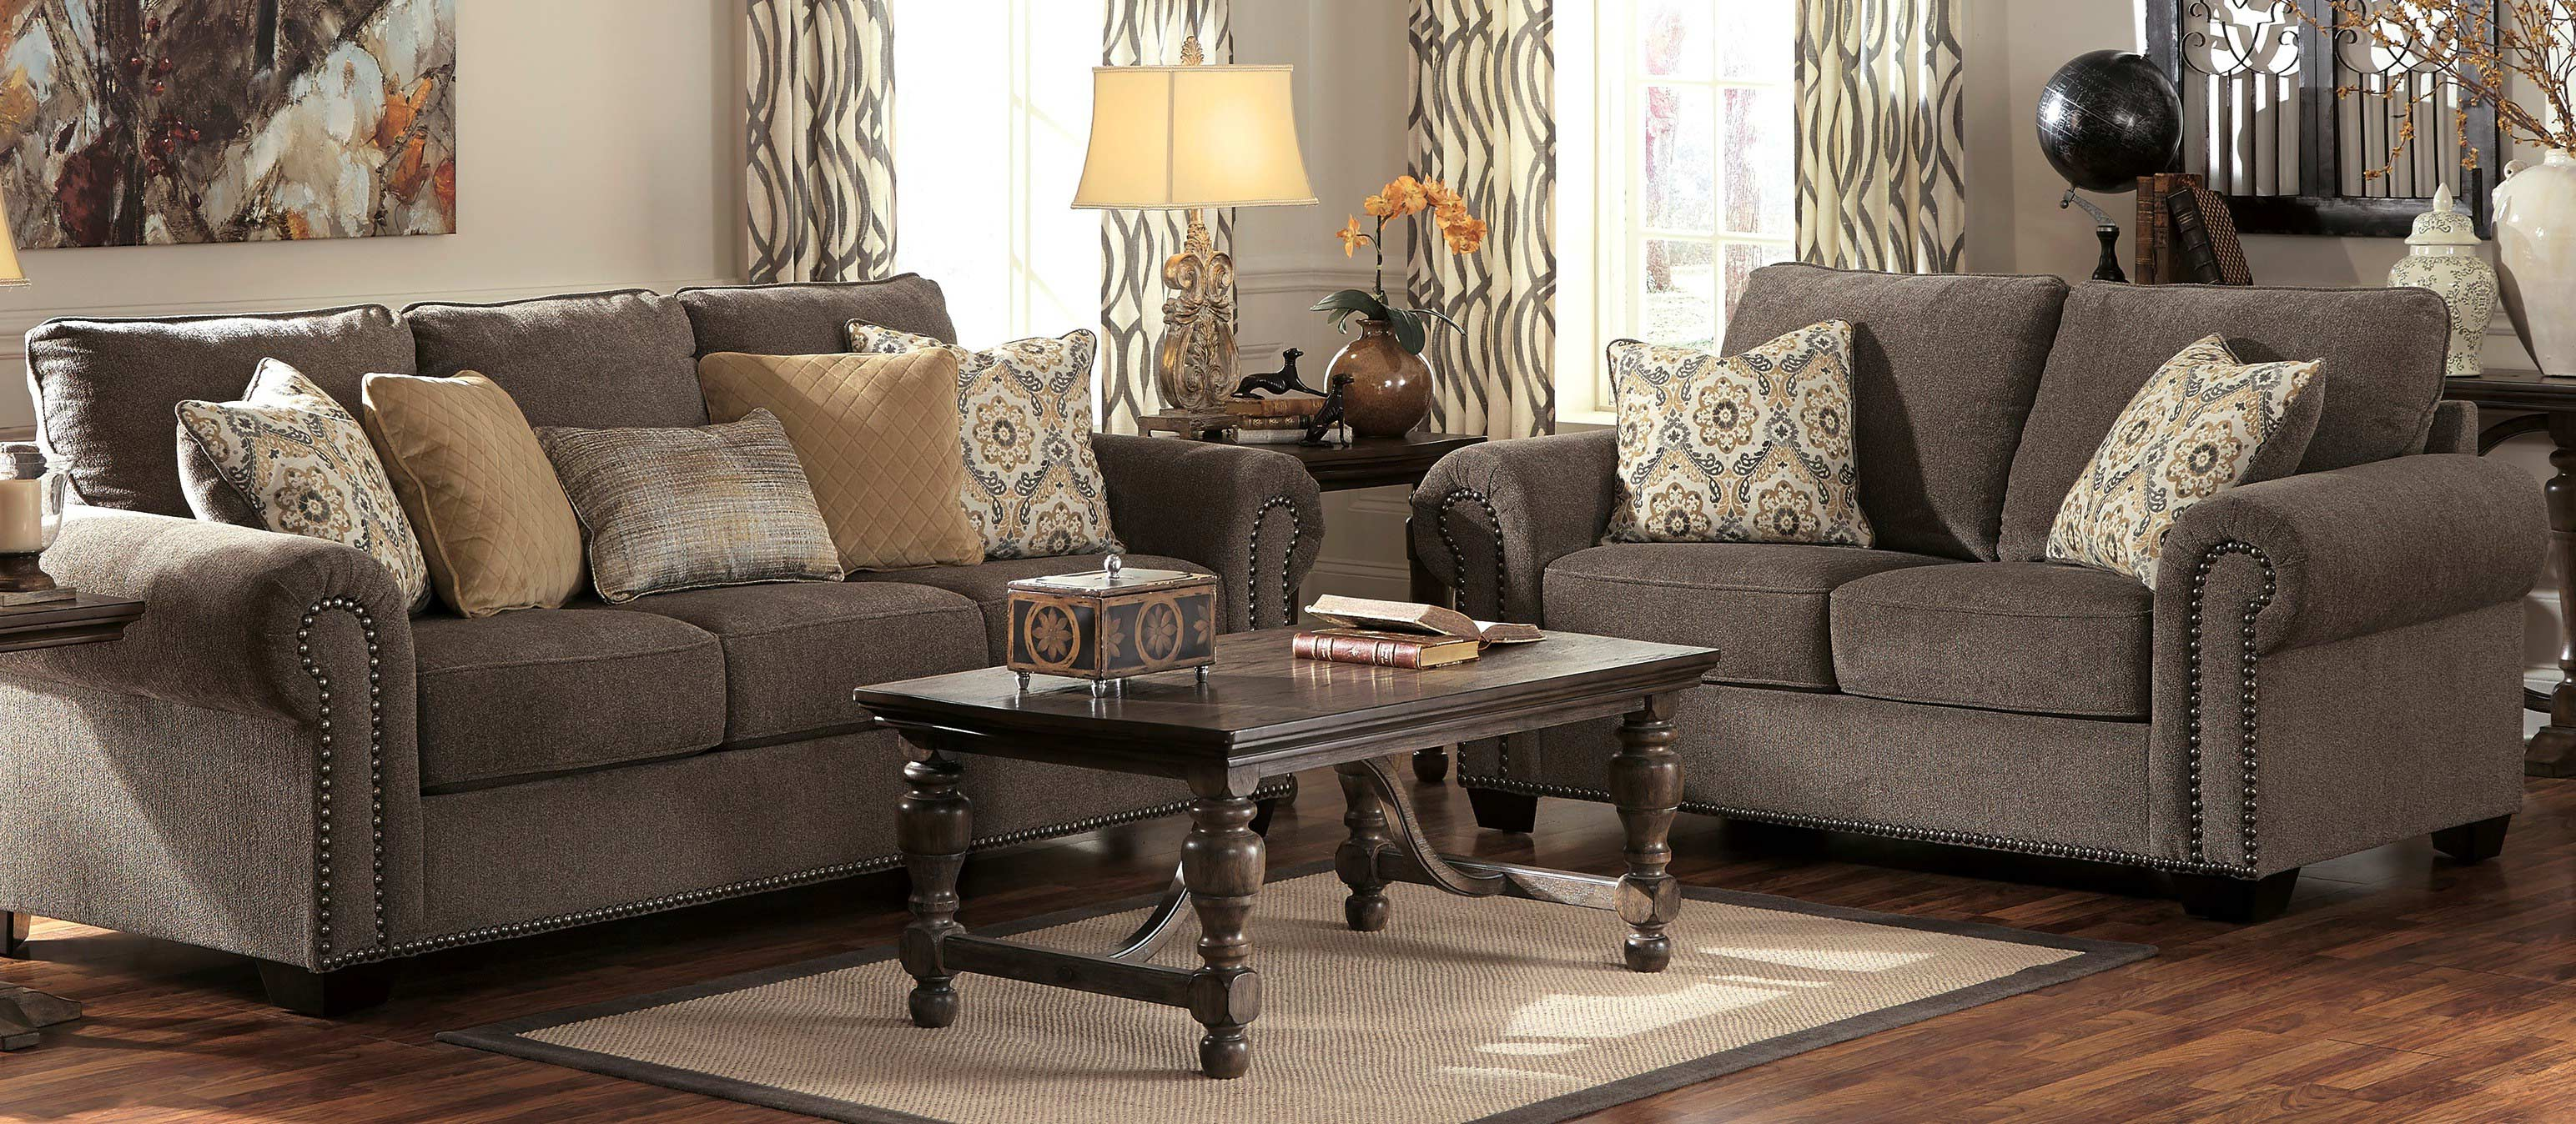 rooms to go living room set 14